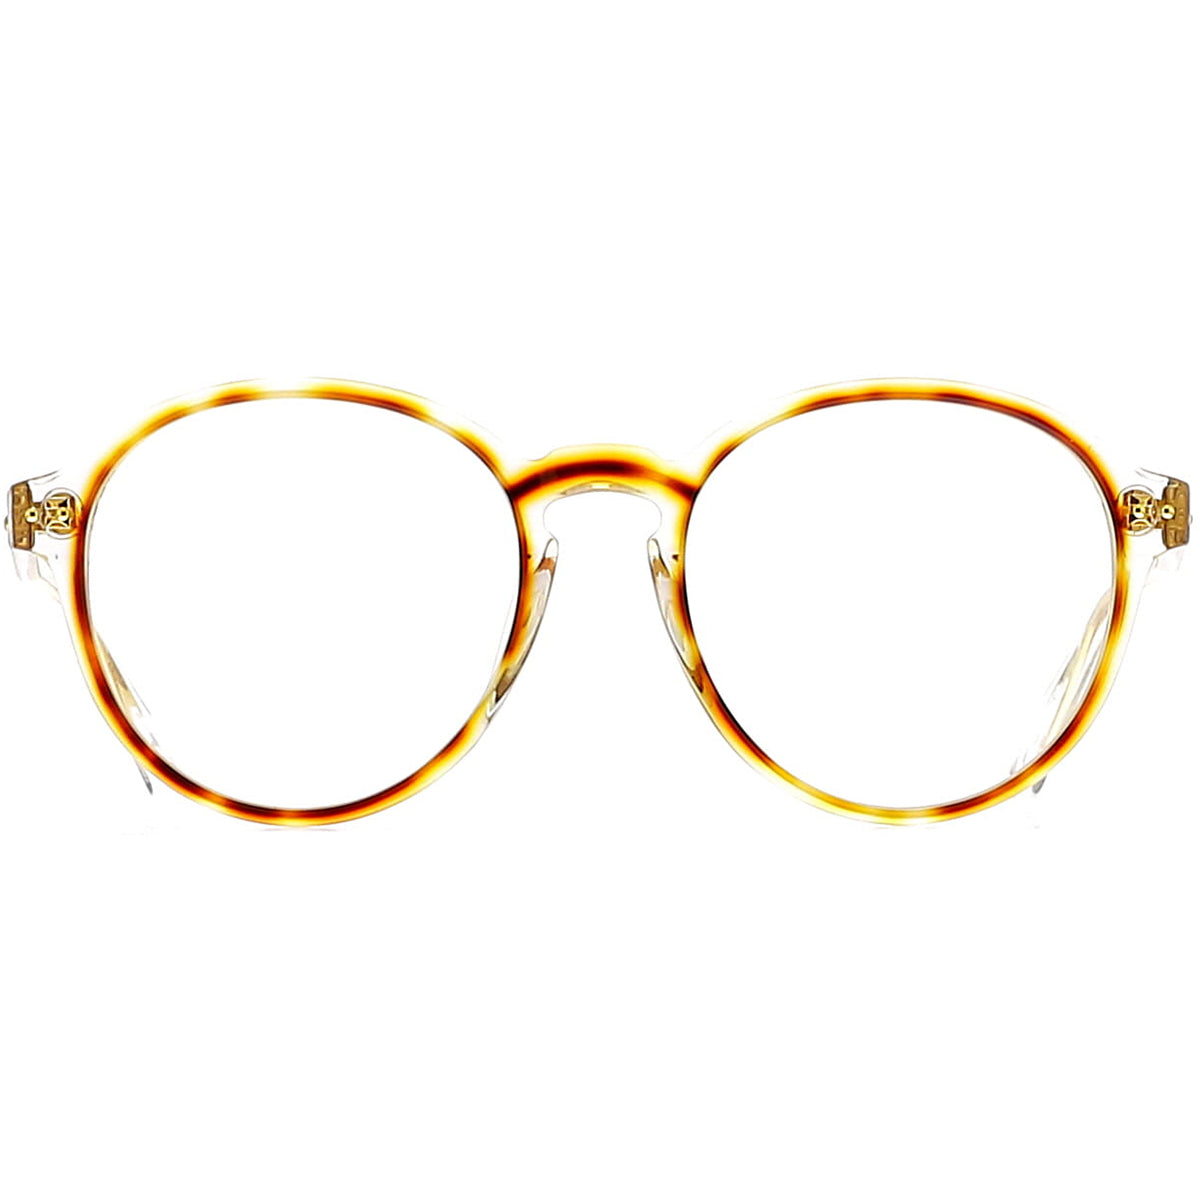 Linda Farrow Luxe LFL40 C25 Optical Clear/ Tortoiseshell/ Yellow Gold